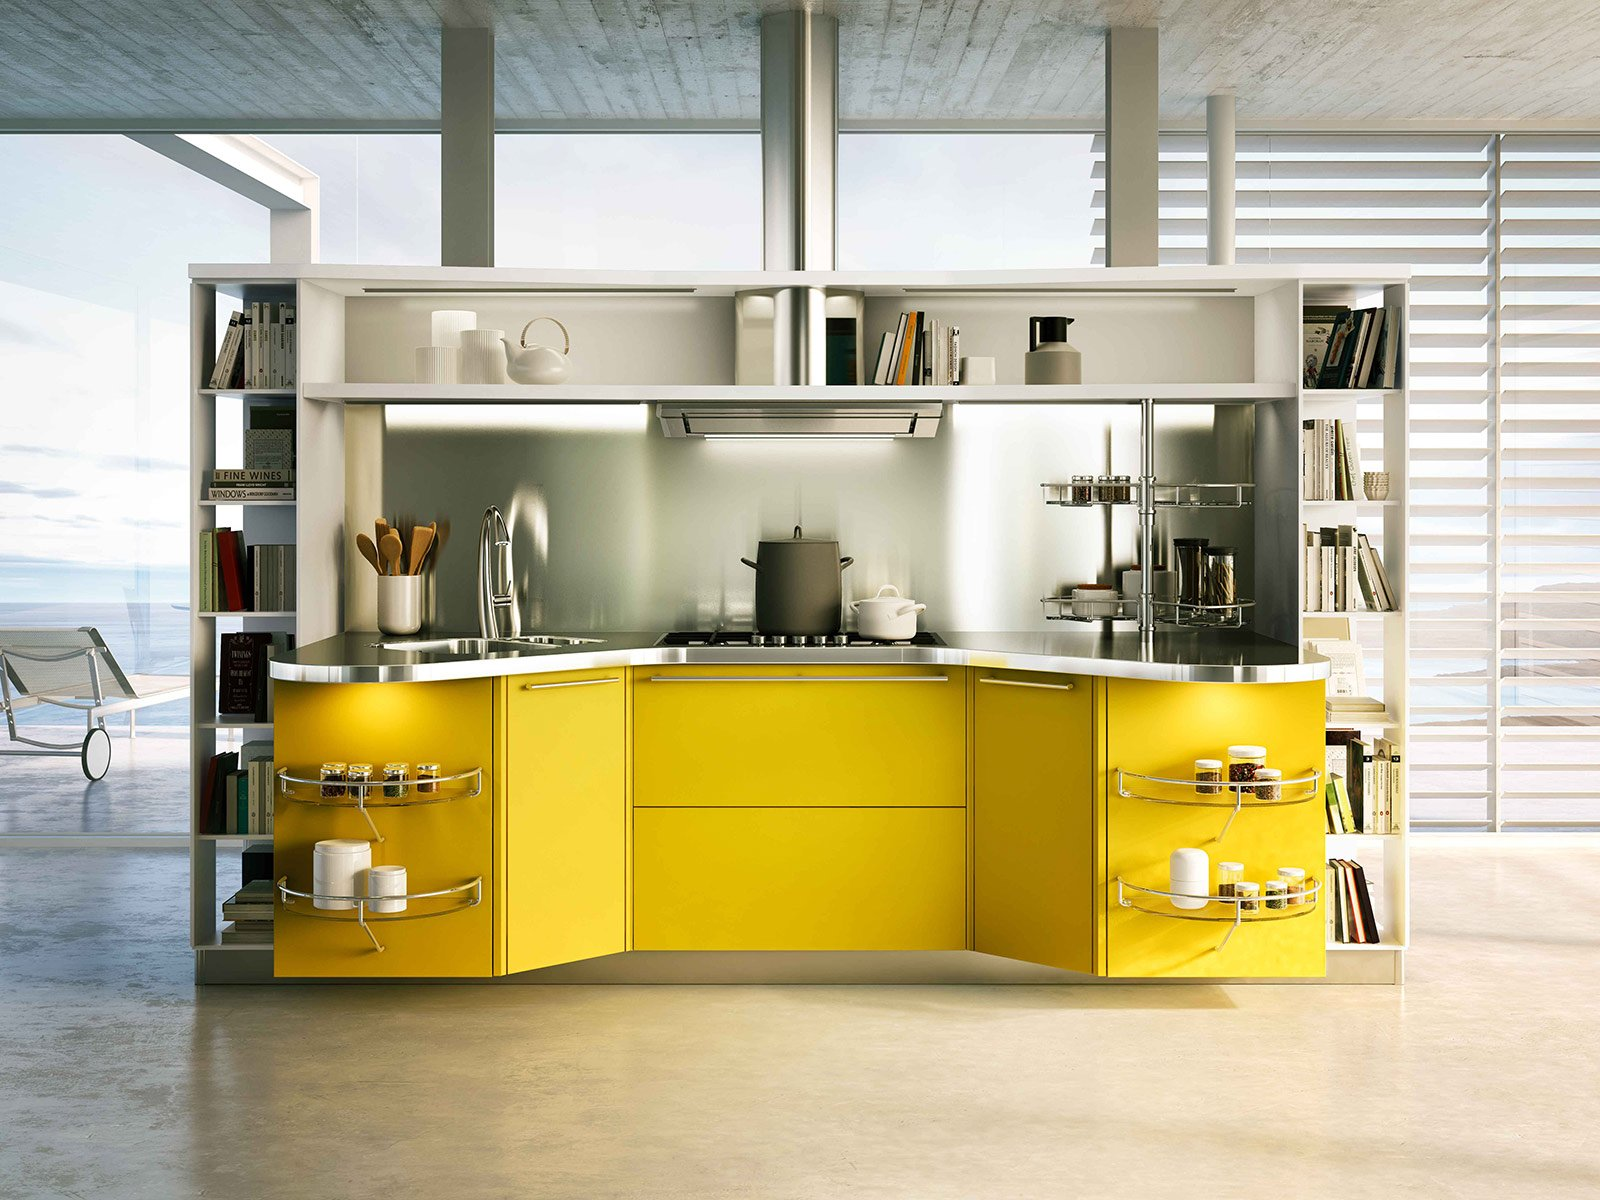 Cucine colorate come un quadro contemporaneo cose di casa for Cucine compatte